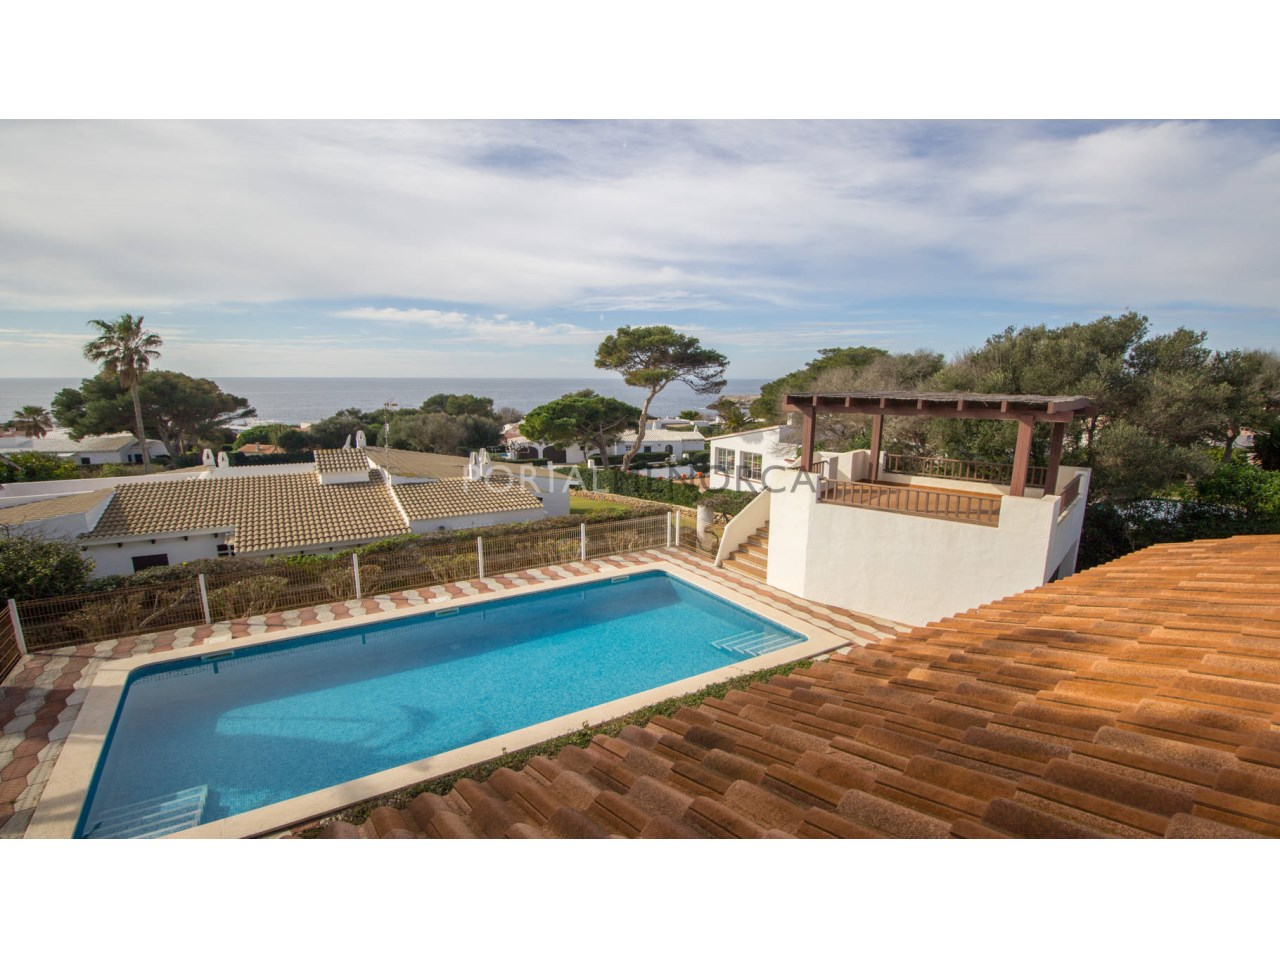 Villa with pool and sea view for sale in Menorca